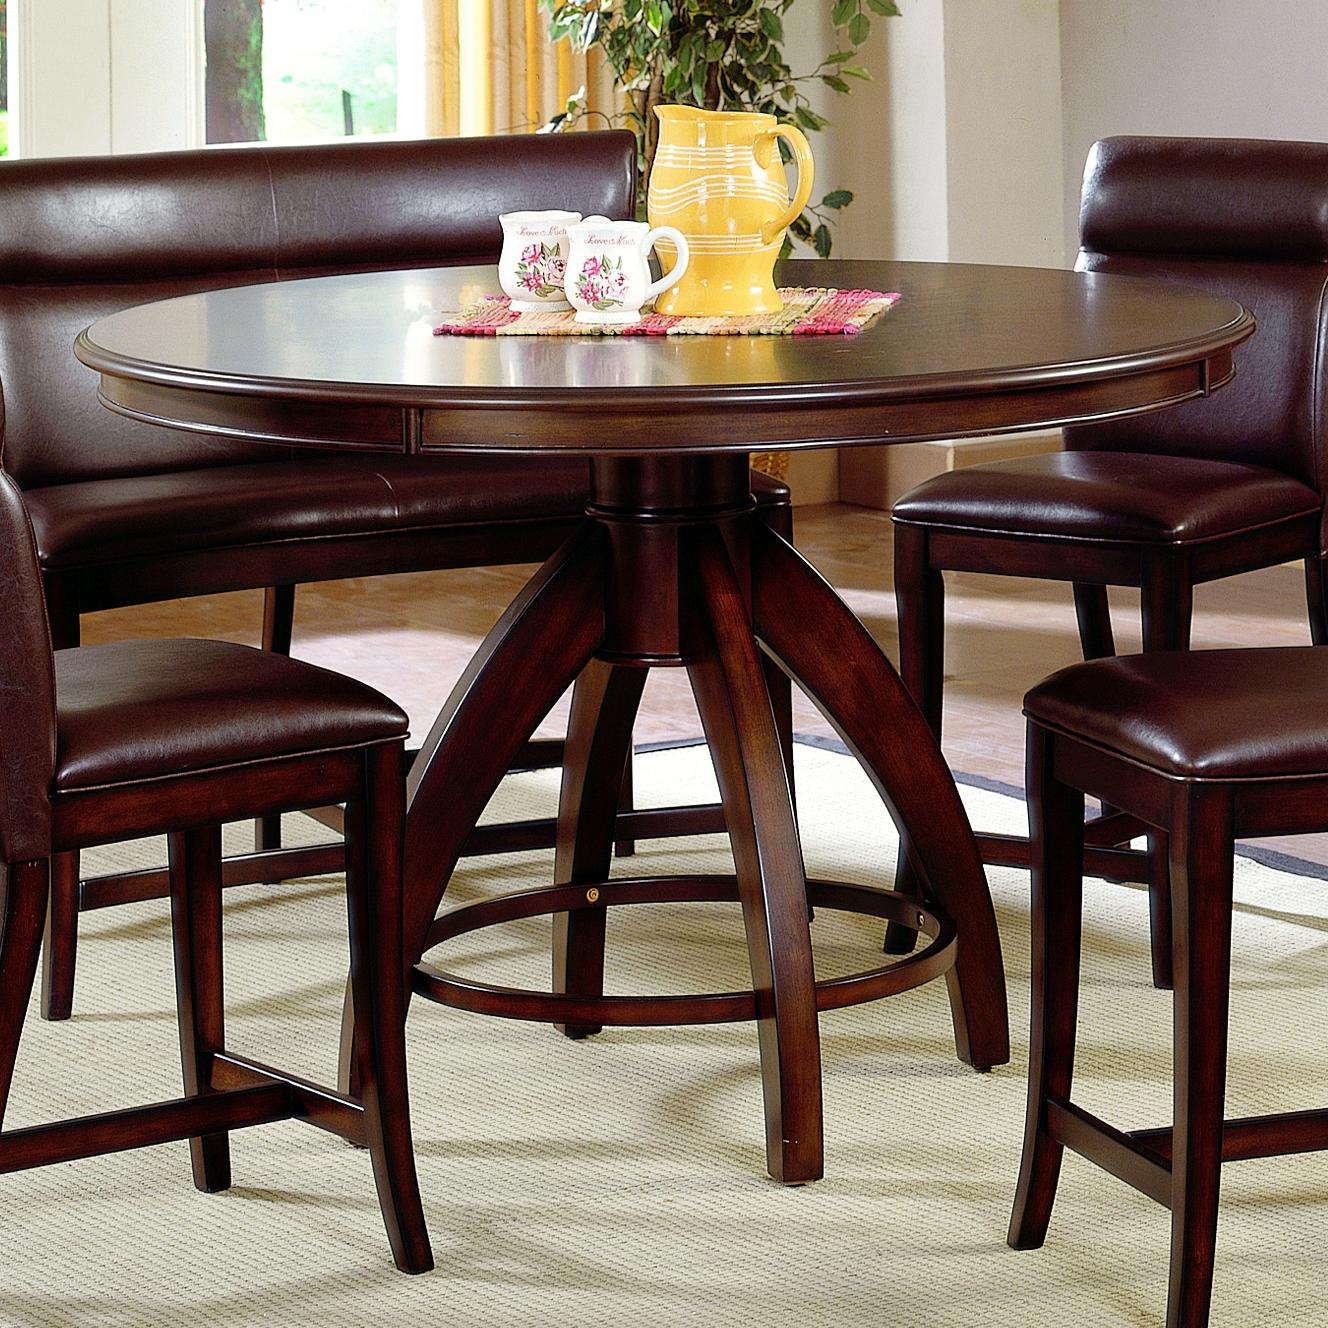 Hillsdale Nottingham Timeless Counter Height Dining Table  : products2Fhillsdale2Fcolor2Fnottingham2040774077dtbg b from www.boulevardhomefurnishings.com size 1328 x 1328 jpeg 315kB